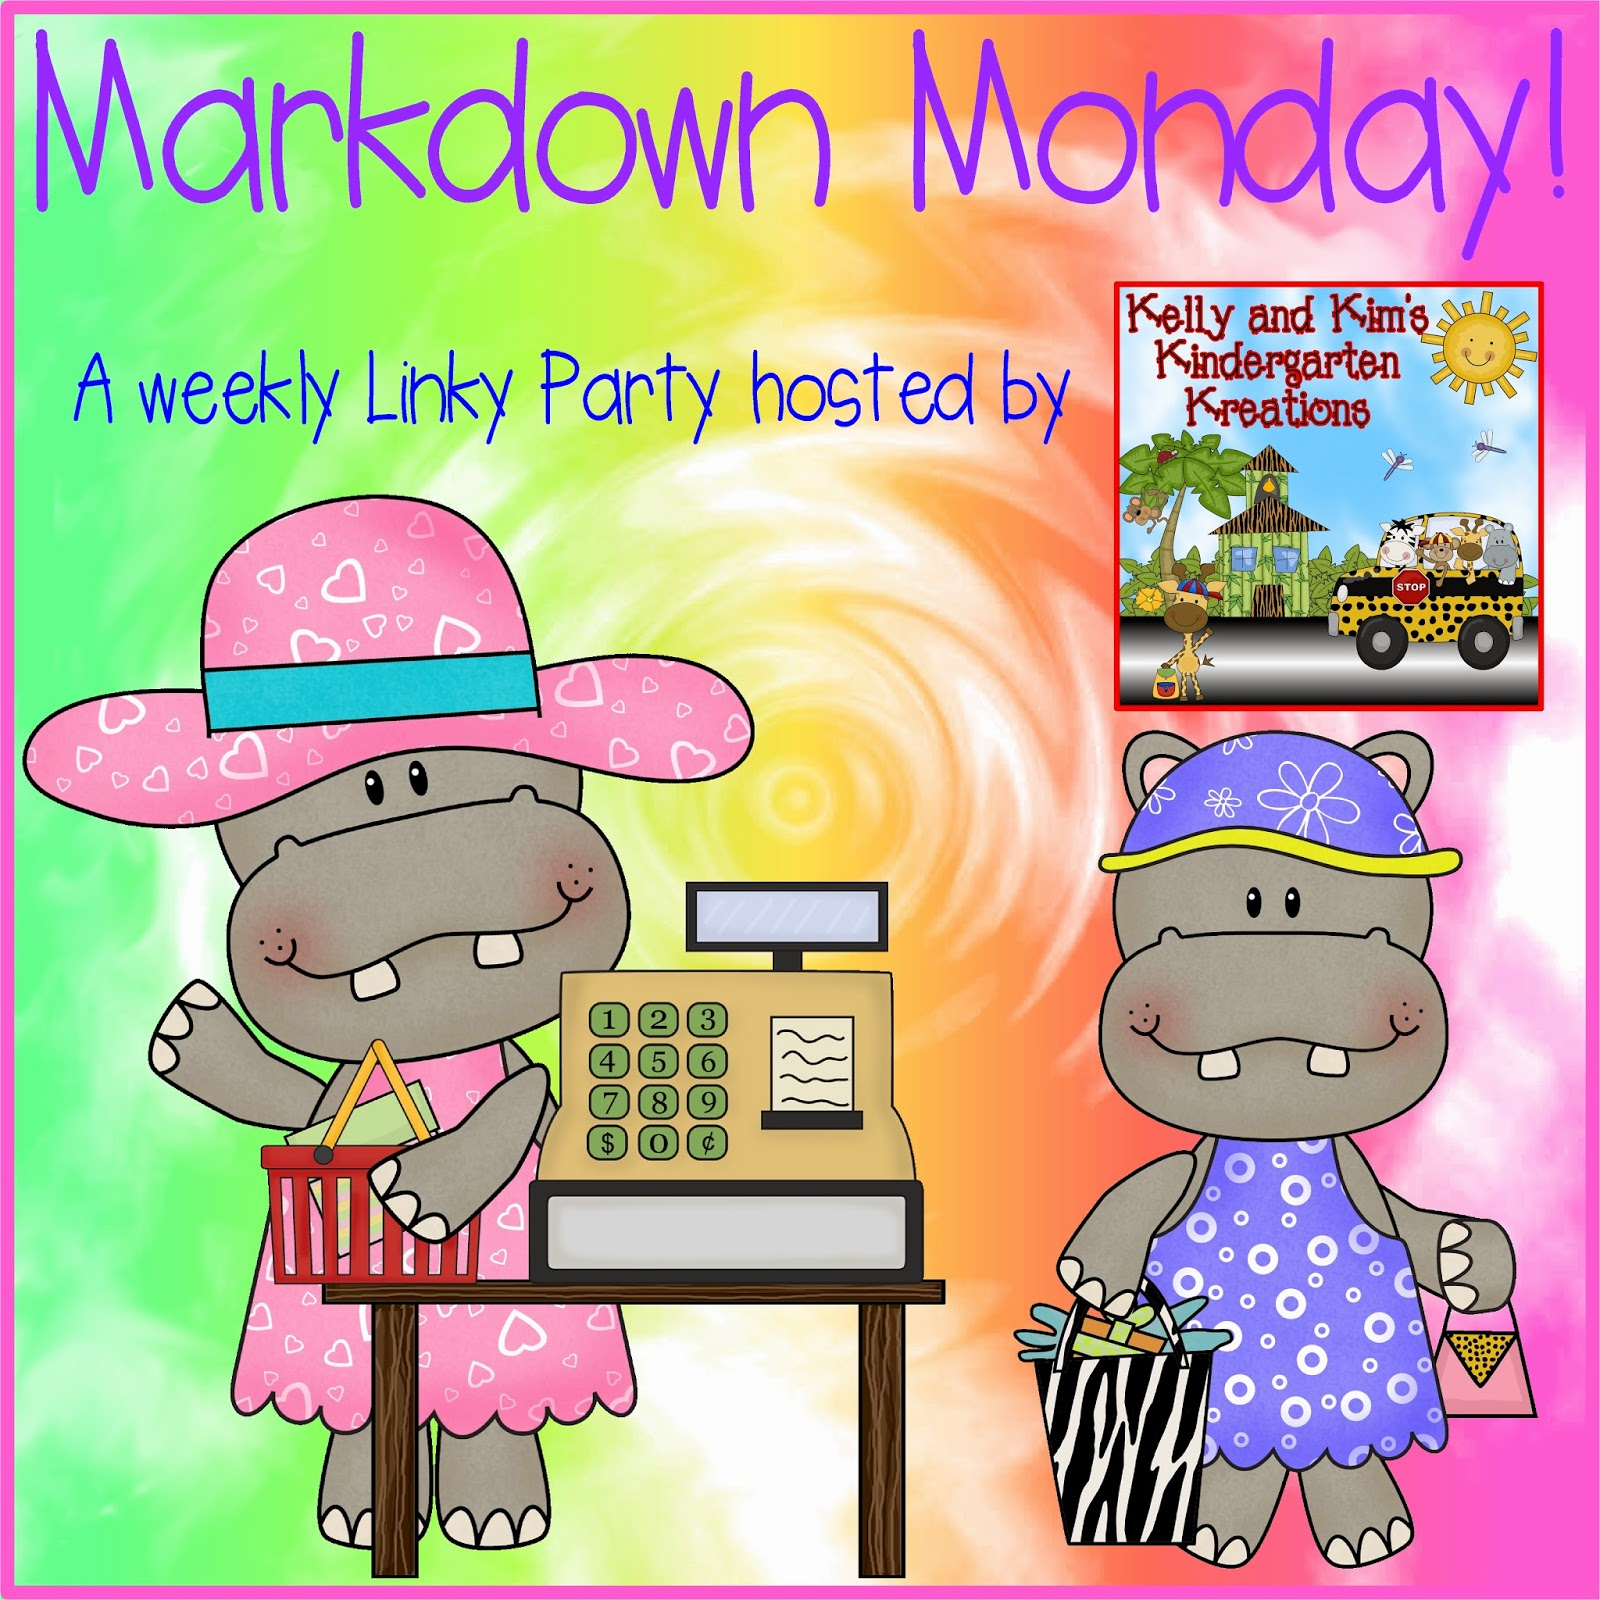 http://kellyandkimskindergarten.blogspot.com/2014/08/markdown-monday-linky-party-august-11th.html